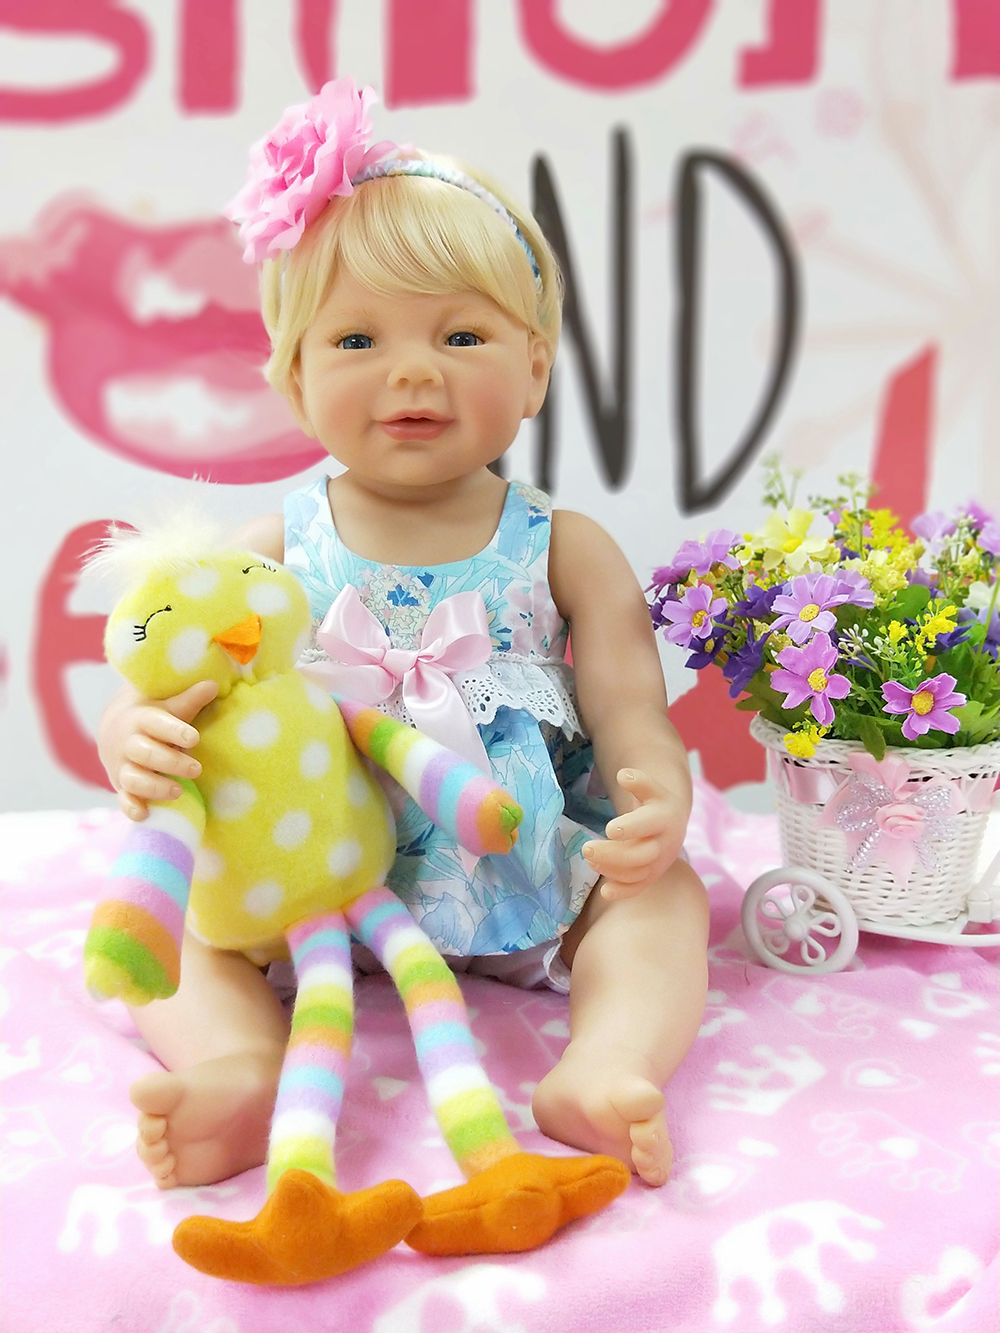 New Arrival Washable Full Body Silicone Reborn Baby Girl Dolls Toys for Children Girl Boy Birthday Gifts Plush Dark Doll Toys new arrival washable full body silicone reborn baby girl dolls toys for children girl boy birthday gifts plush dark doll toys